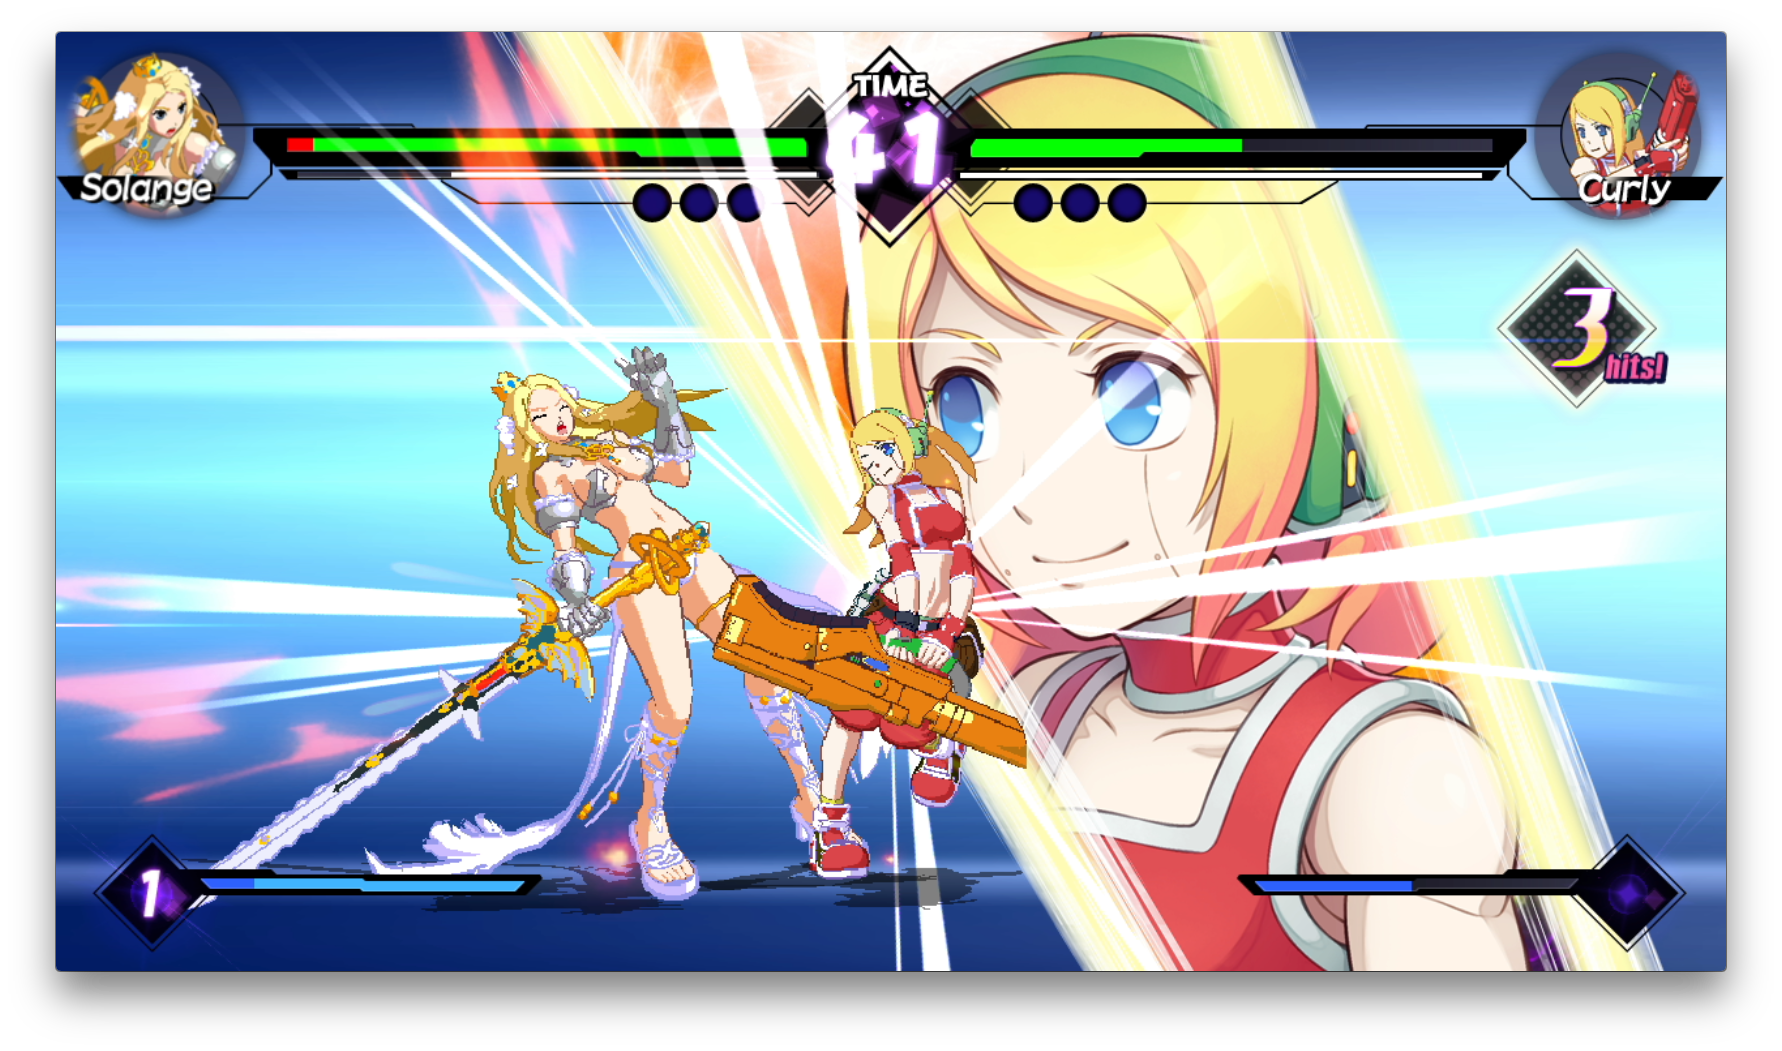 Blade Strangers Switch review screenshot - One of the special moves